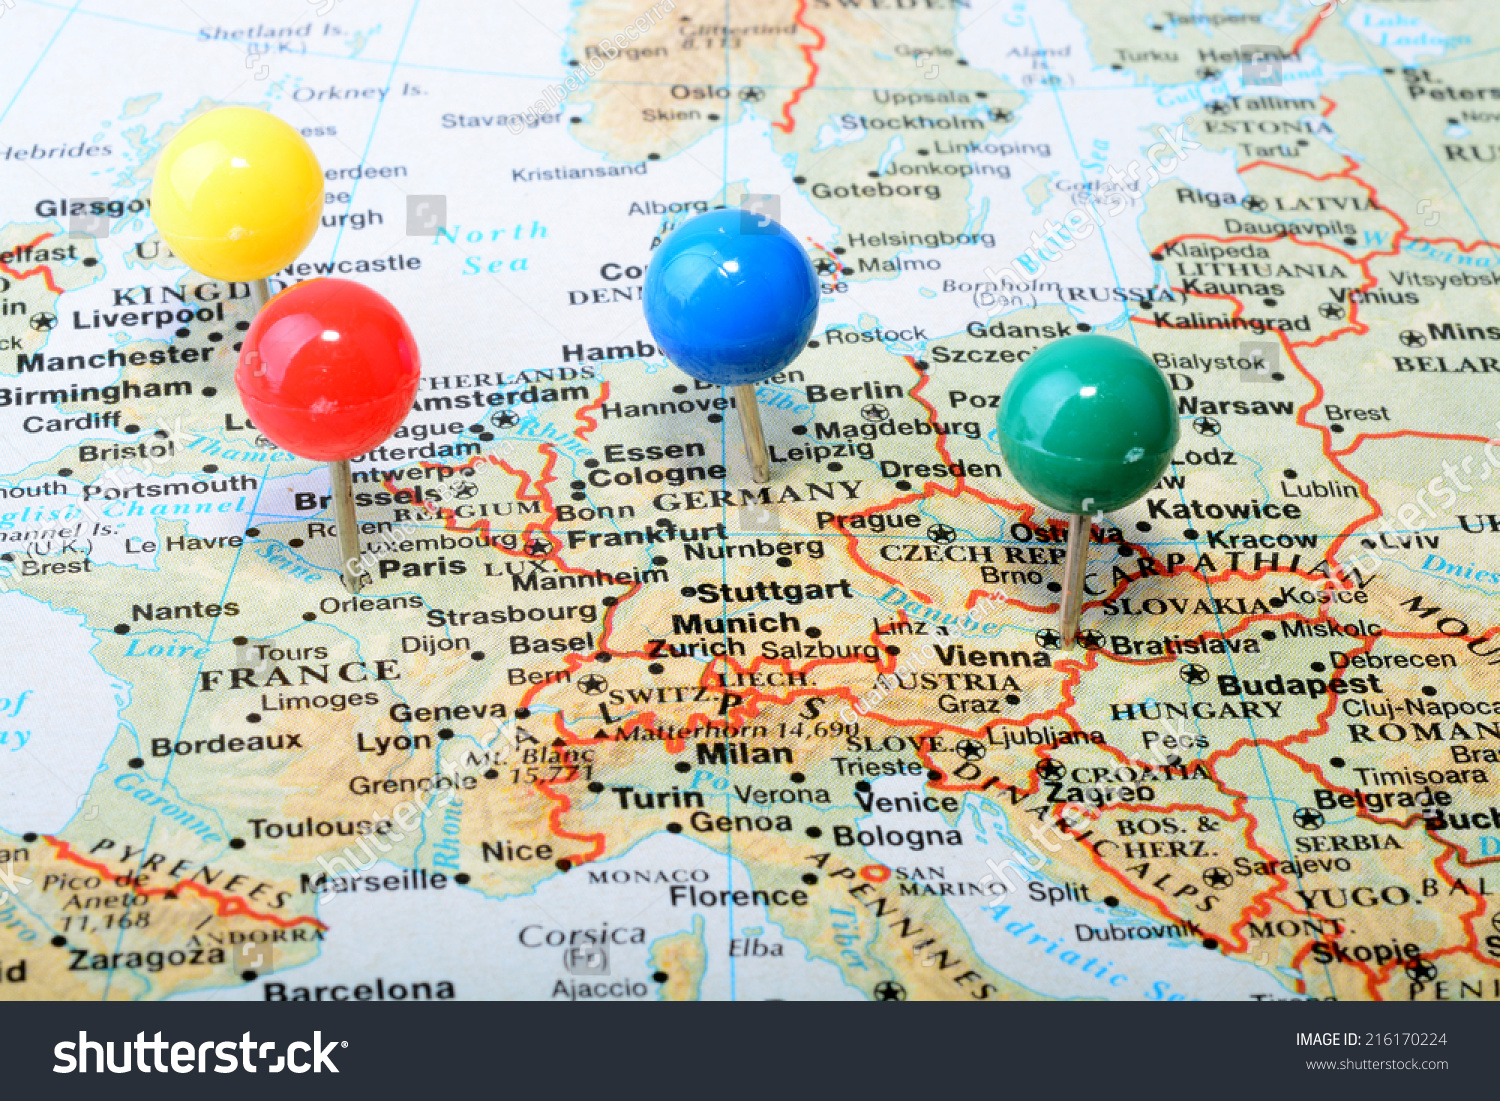 Maps Update 18001977 Map of West Europe with Cities Vector Map – Map of West Germany with Cities